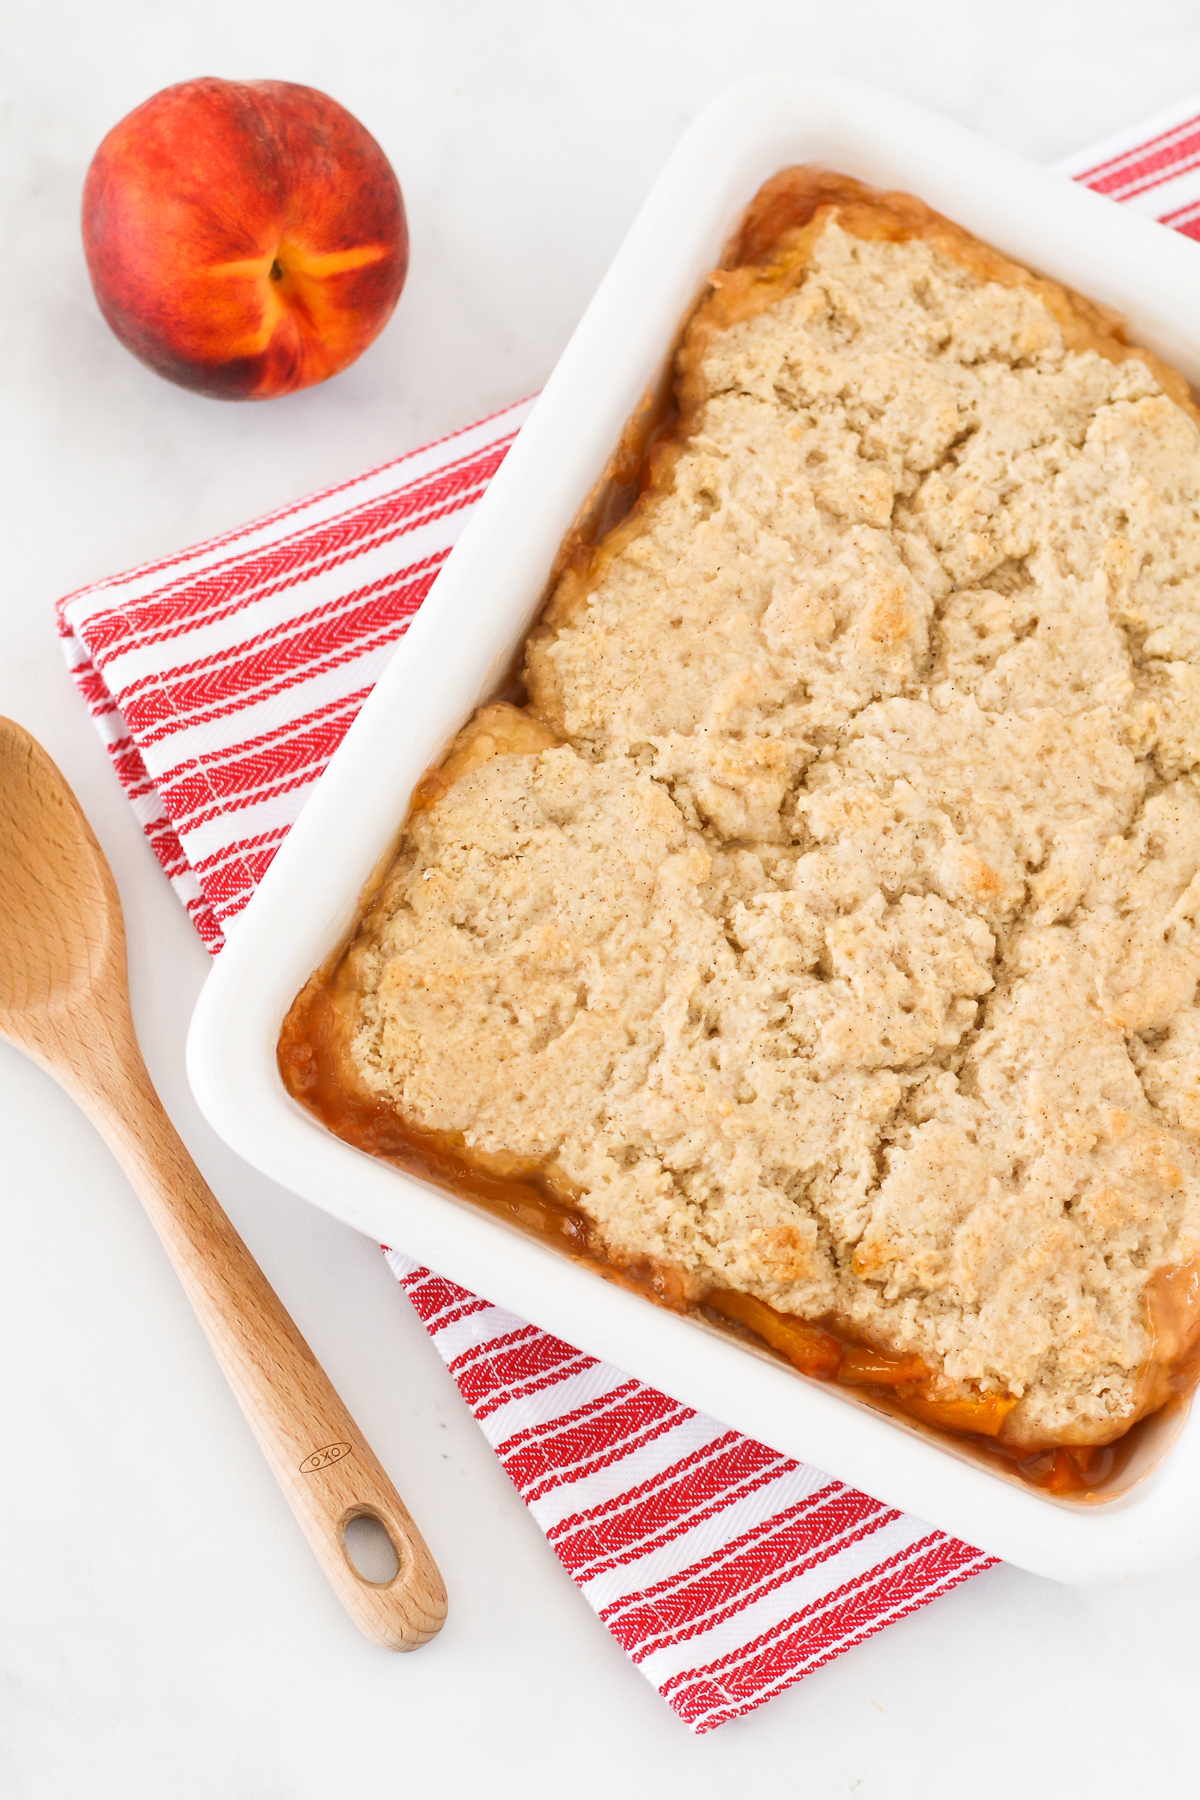 Gluten Free Vegan Peach Cobbler. Perfectly golden biscuit-like topping over sweet, juicy fresh peaches. The BEST summertime dessert!